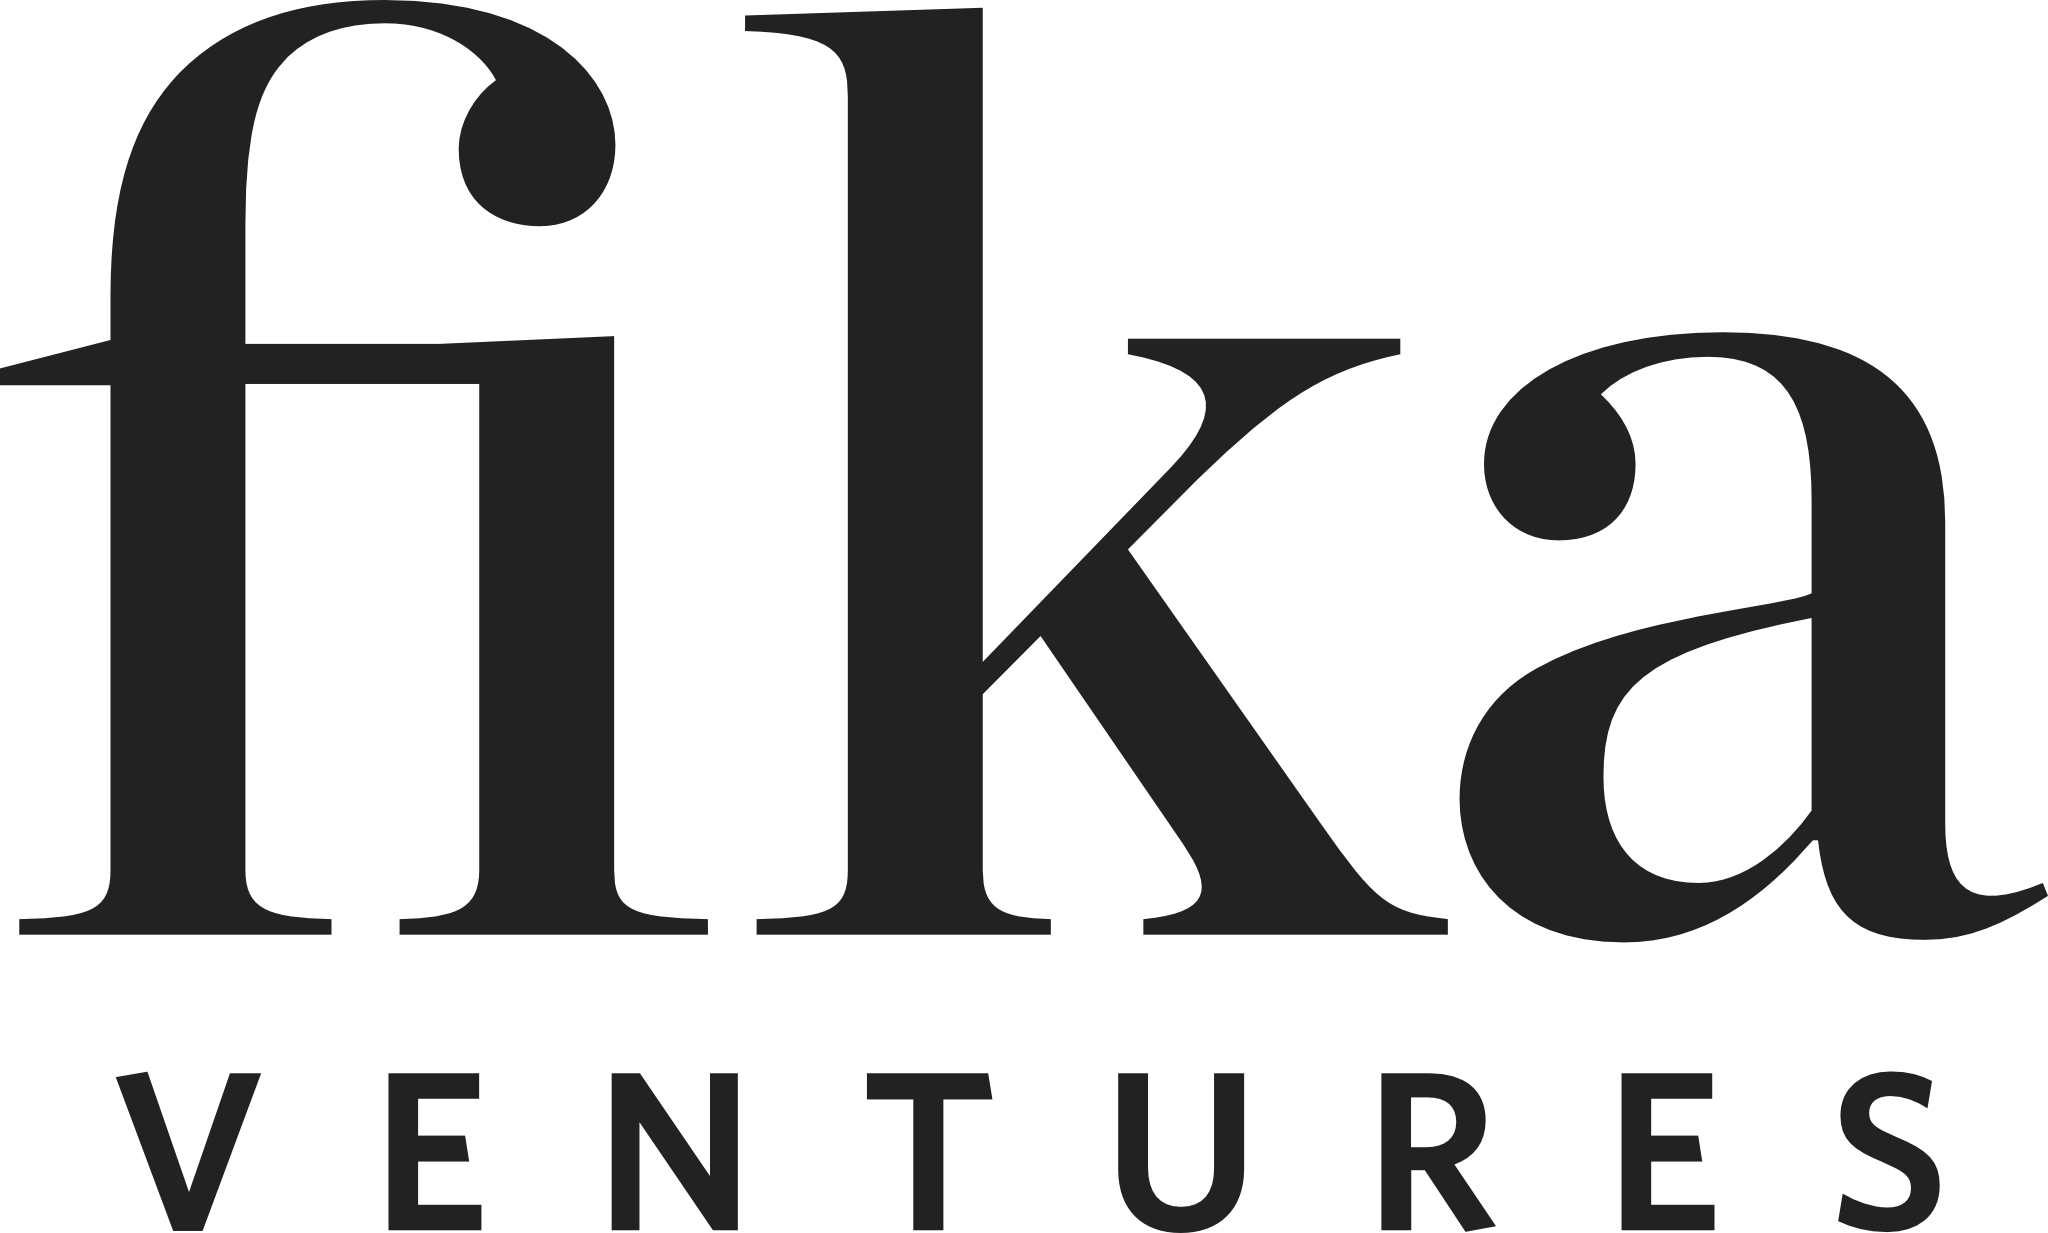 fika-logo-centered-cropped.png